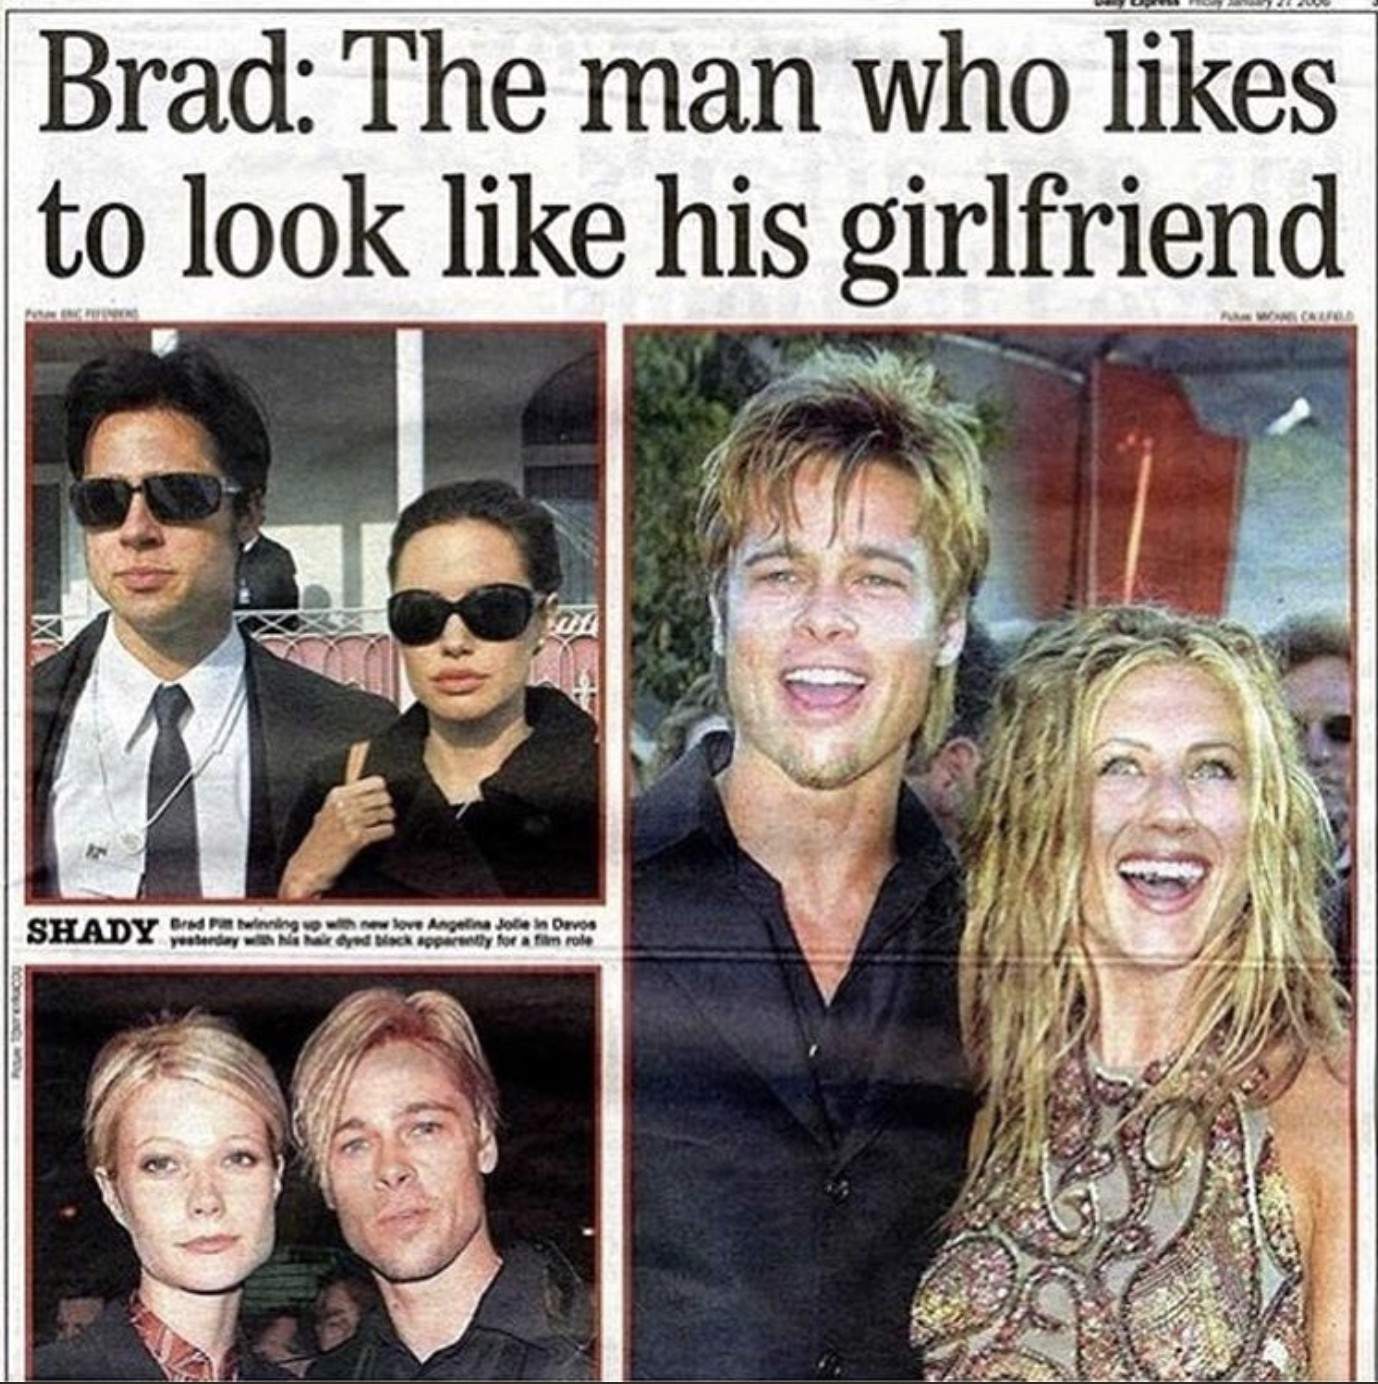 Brad: the man who likes to look like his girlfriend